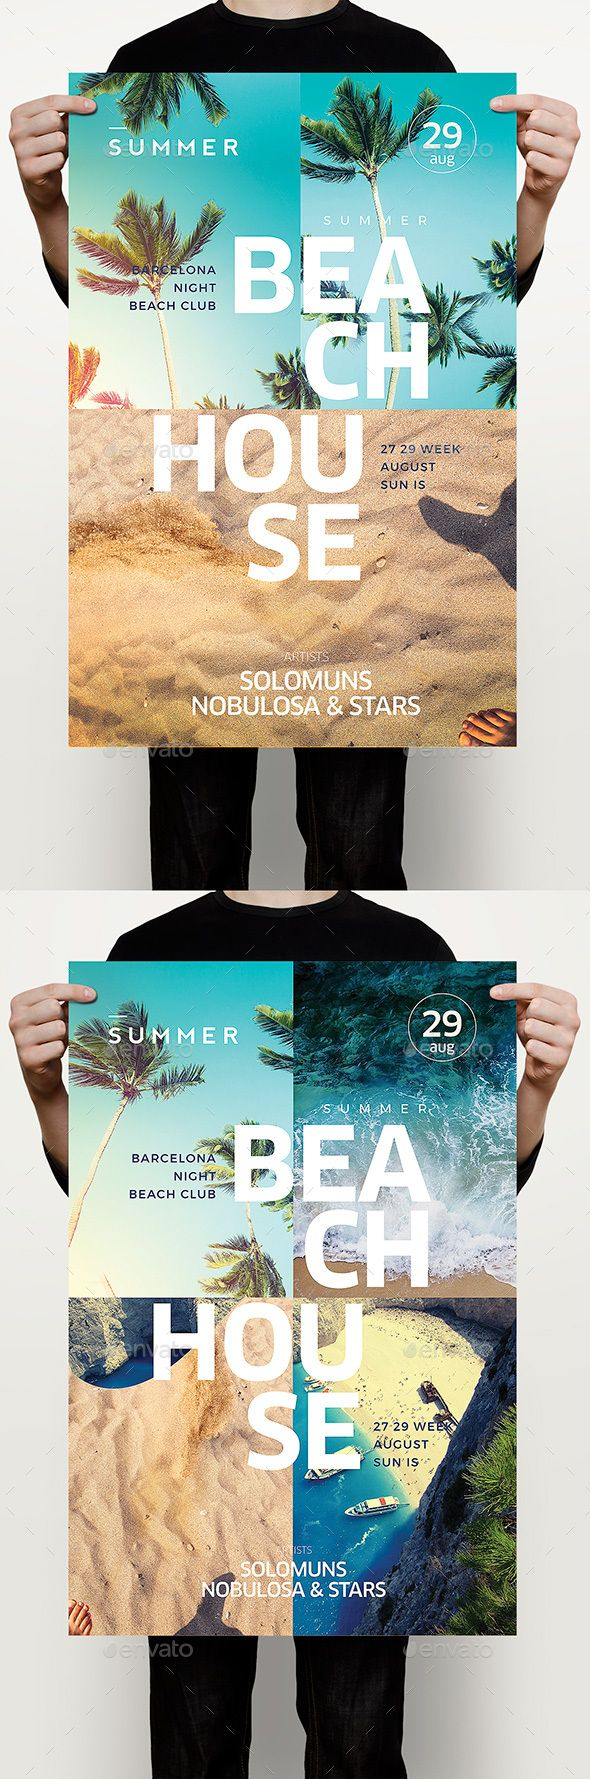 Beach Party Flyer Template PSD. Download here: http://graphicriver.net/item/beach-party-flyer/16757991?ref=ksioks